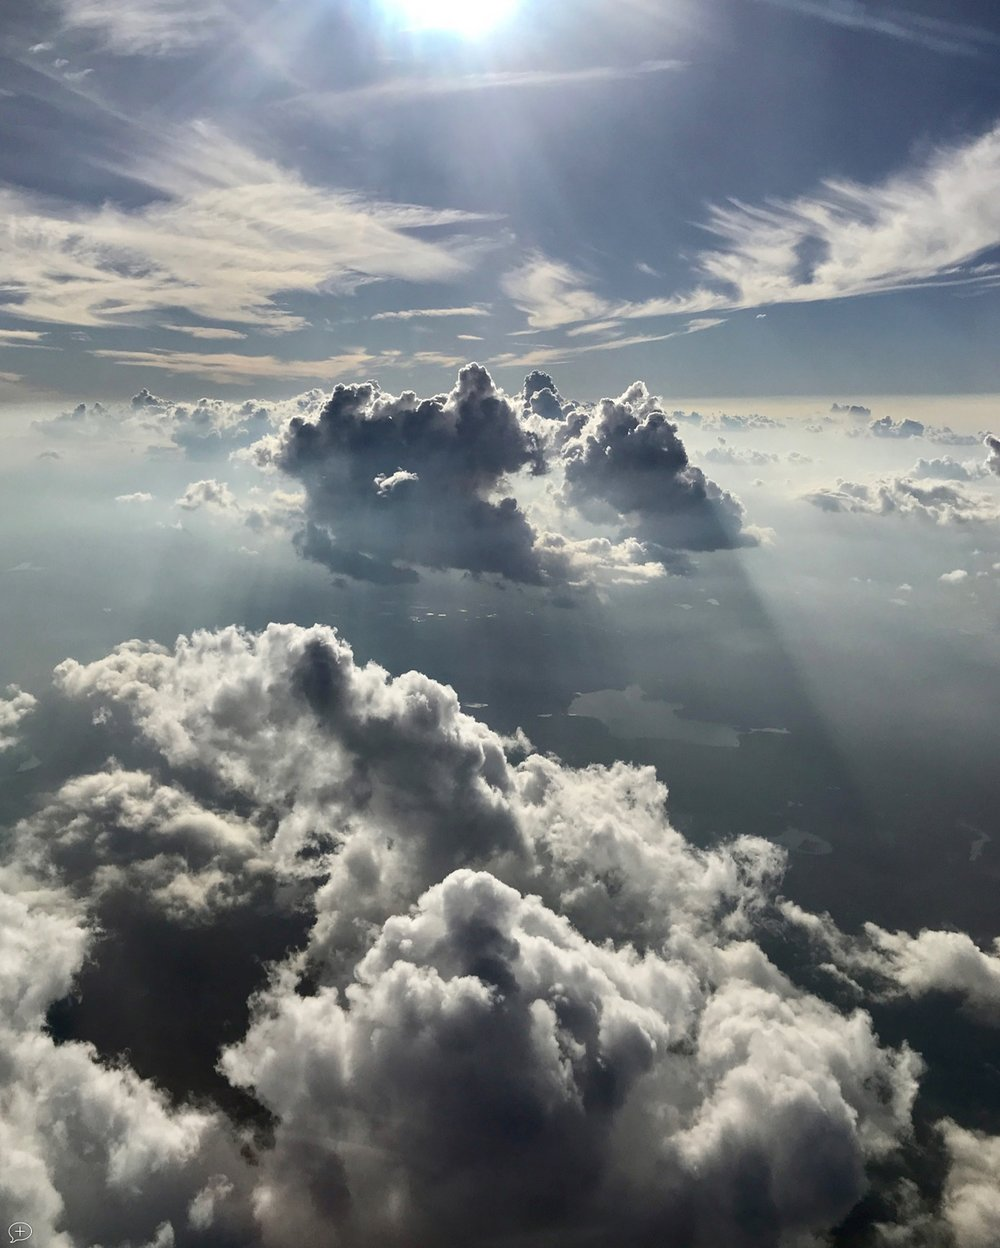 """16.  Clouds above the Appalachians , iPhone 7+, 2017. En route to Philadelphia. (Canvas Photo, 16"""" x 20,""""). I've flown this route many times, but never seen such a display of clouds above us and below. Needless to say, it wasn't a smooth flight.  ©2017 Sean Walmsley"""